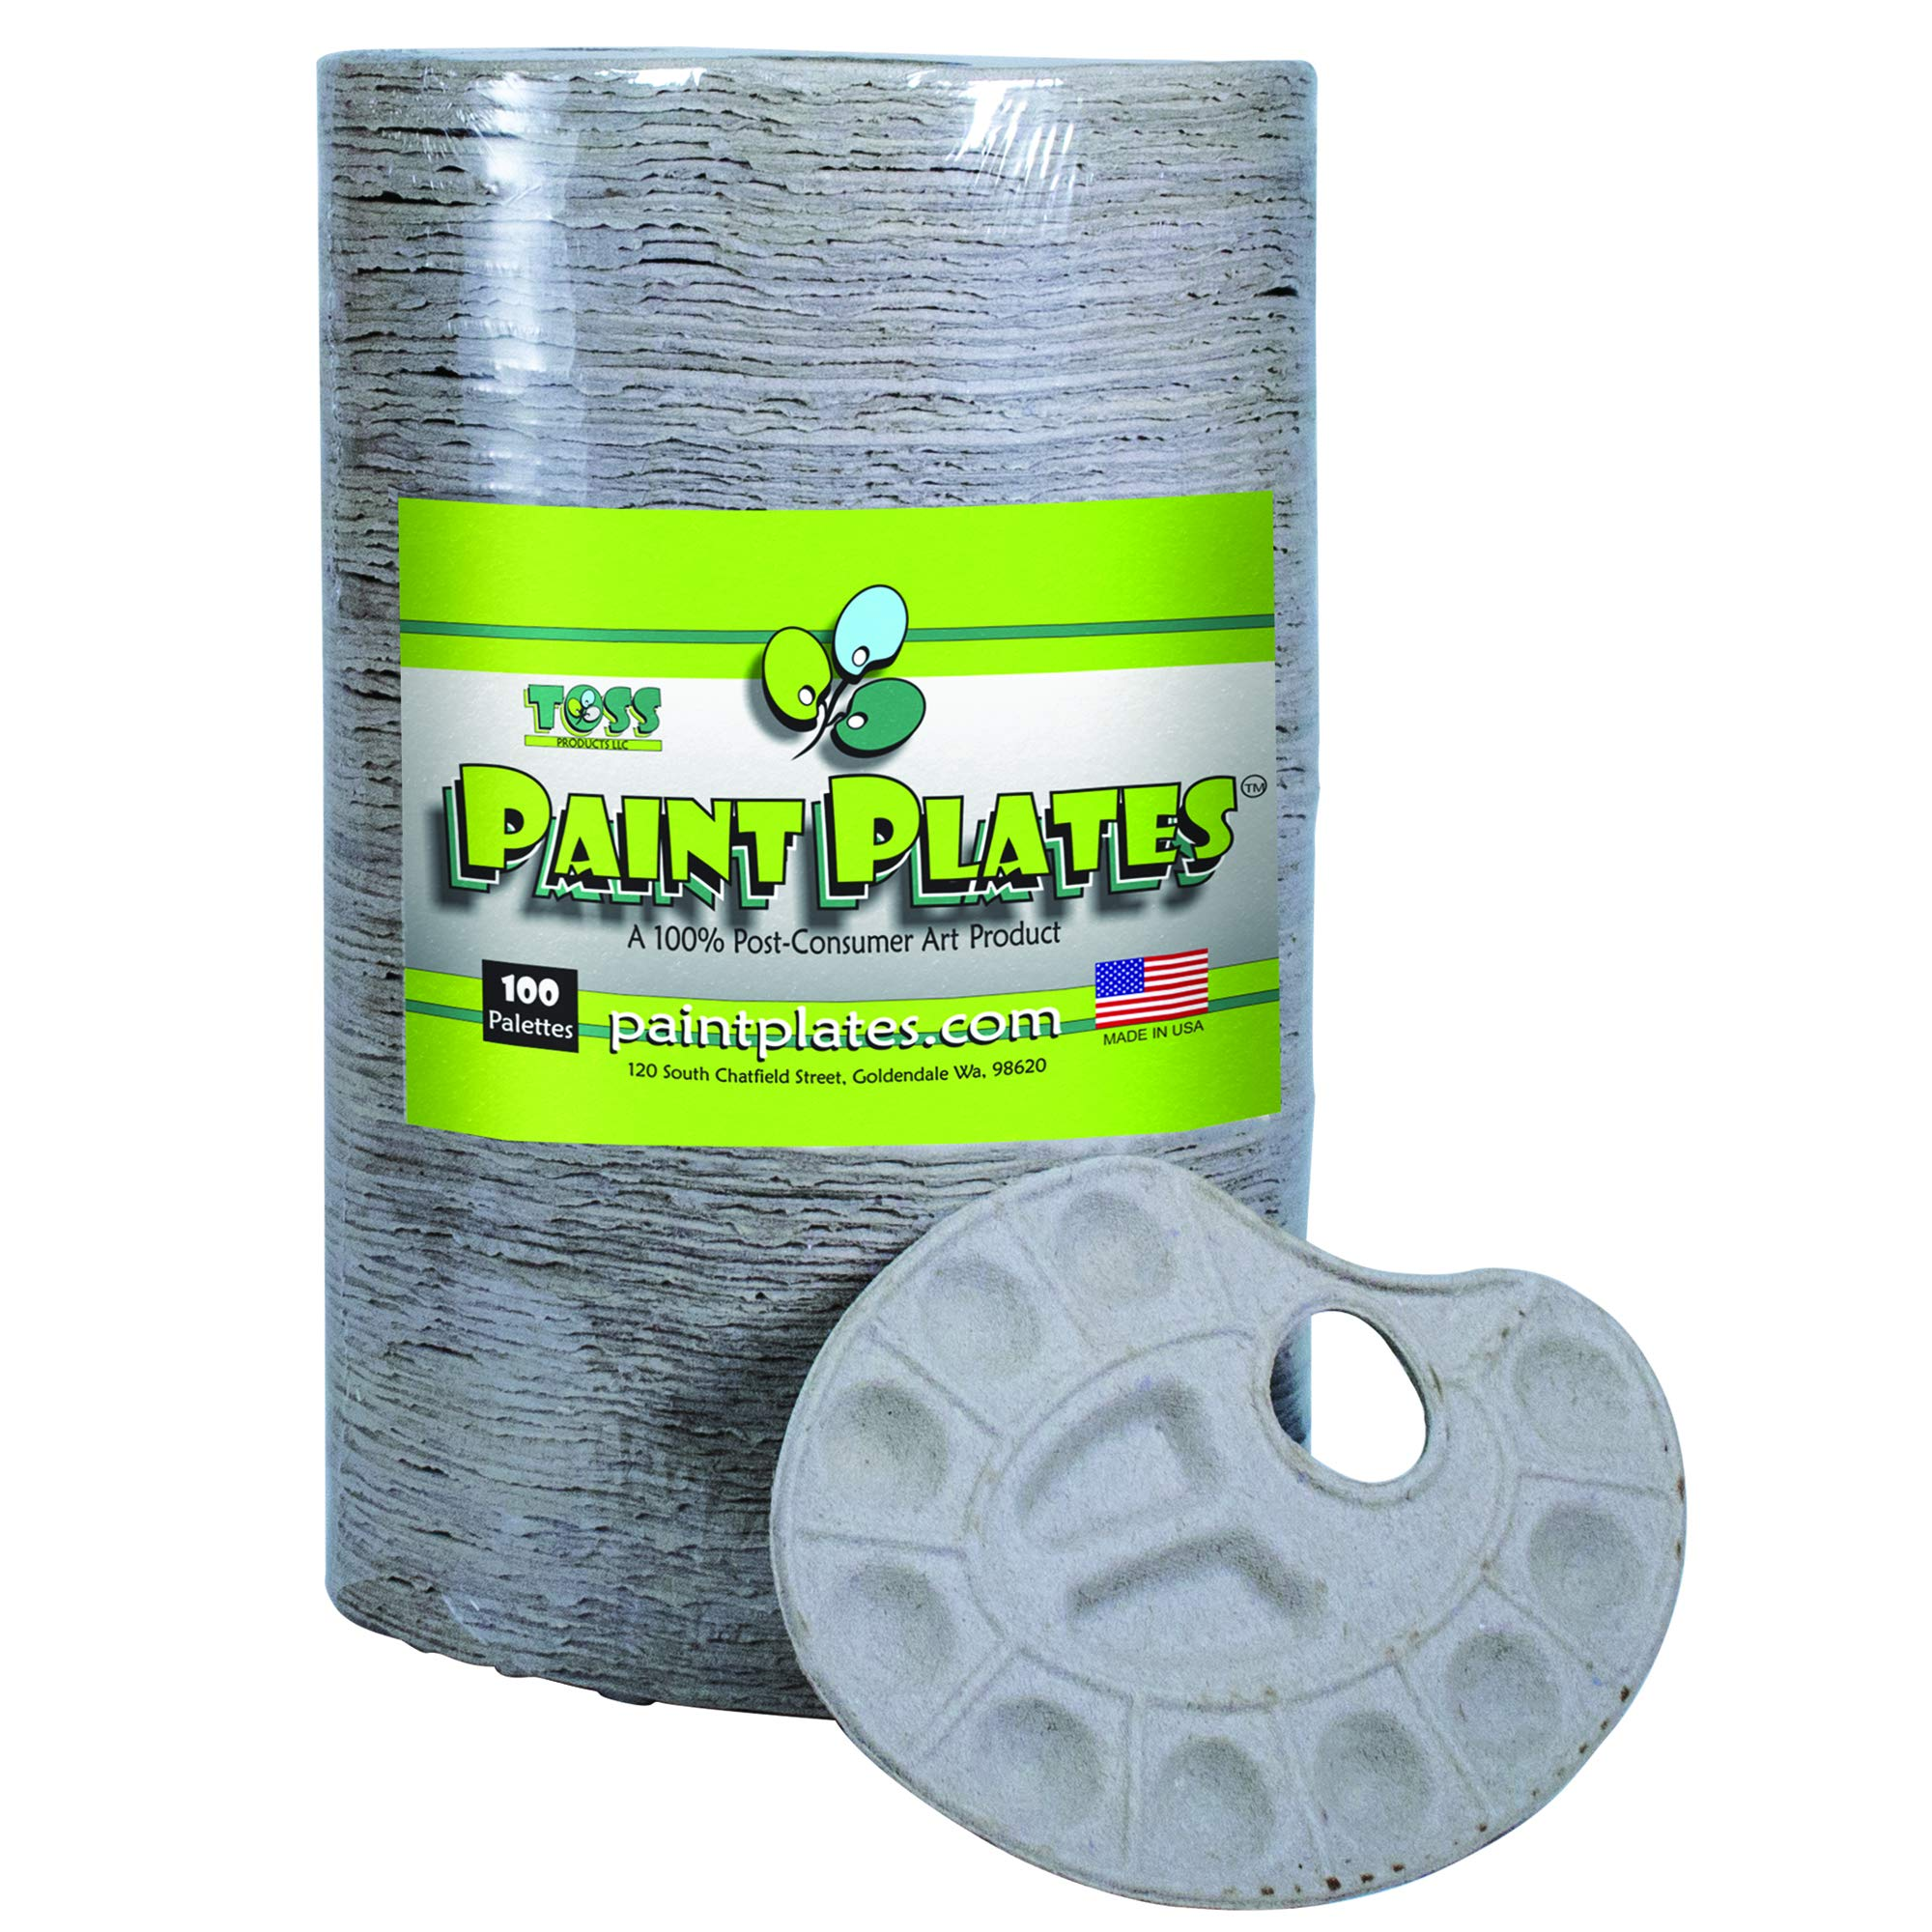 Disposable Recycled Paper Paint Palettes (100) by Paint Plates